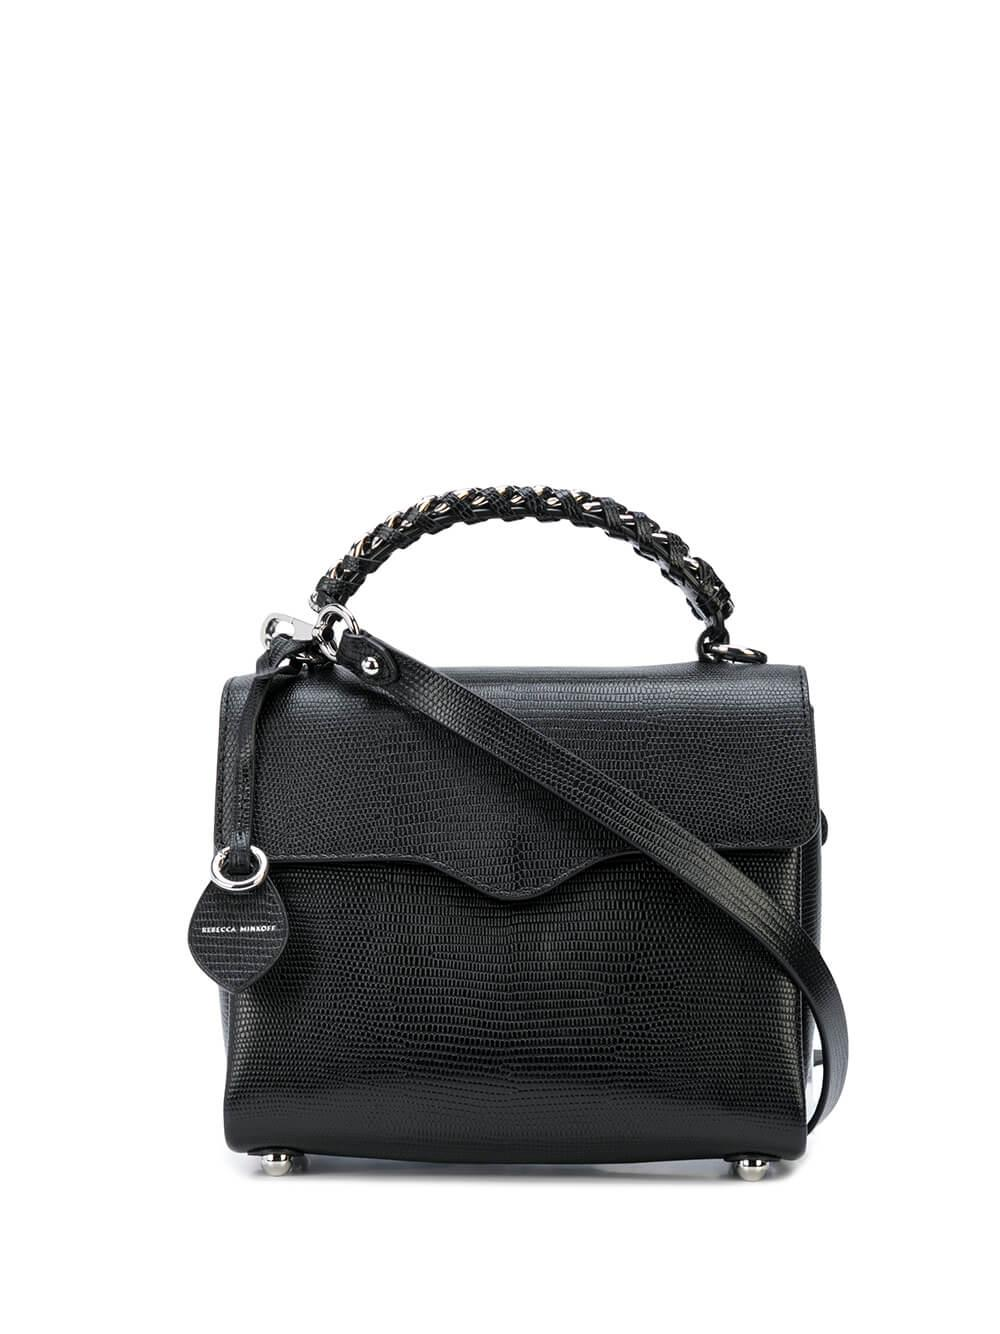 Chain Satchel